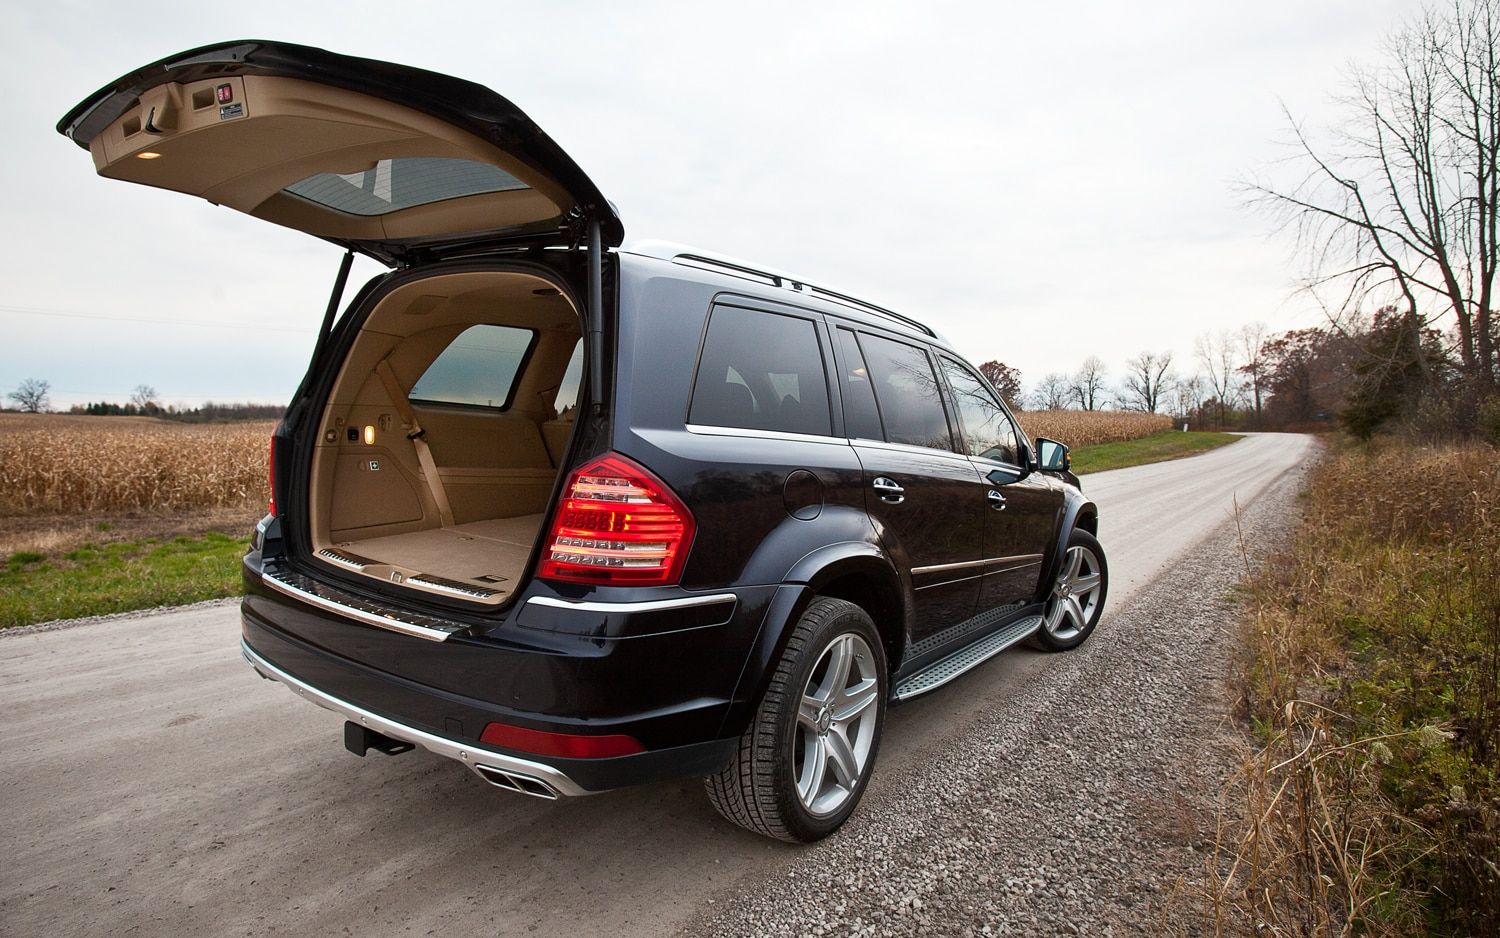 2012 mercedes benz gl550 4matic editors 39 notebook for How to open the trunk of a mercedes benz e320